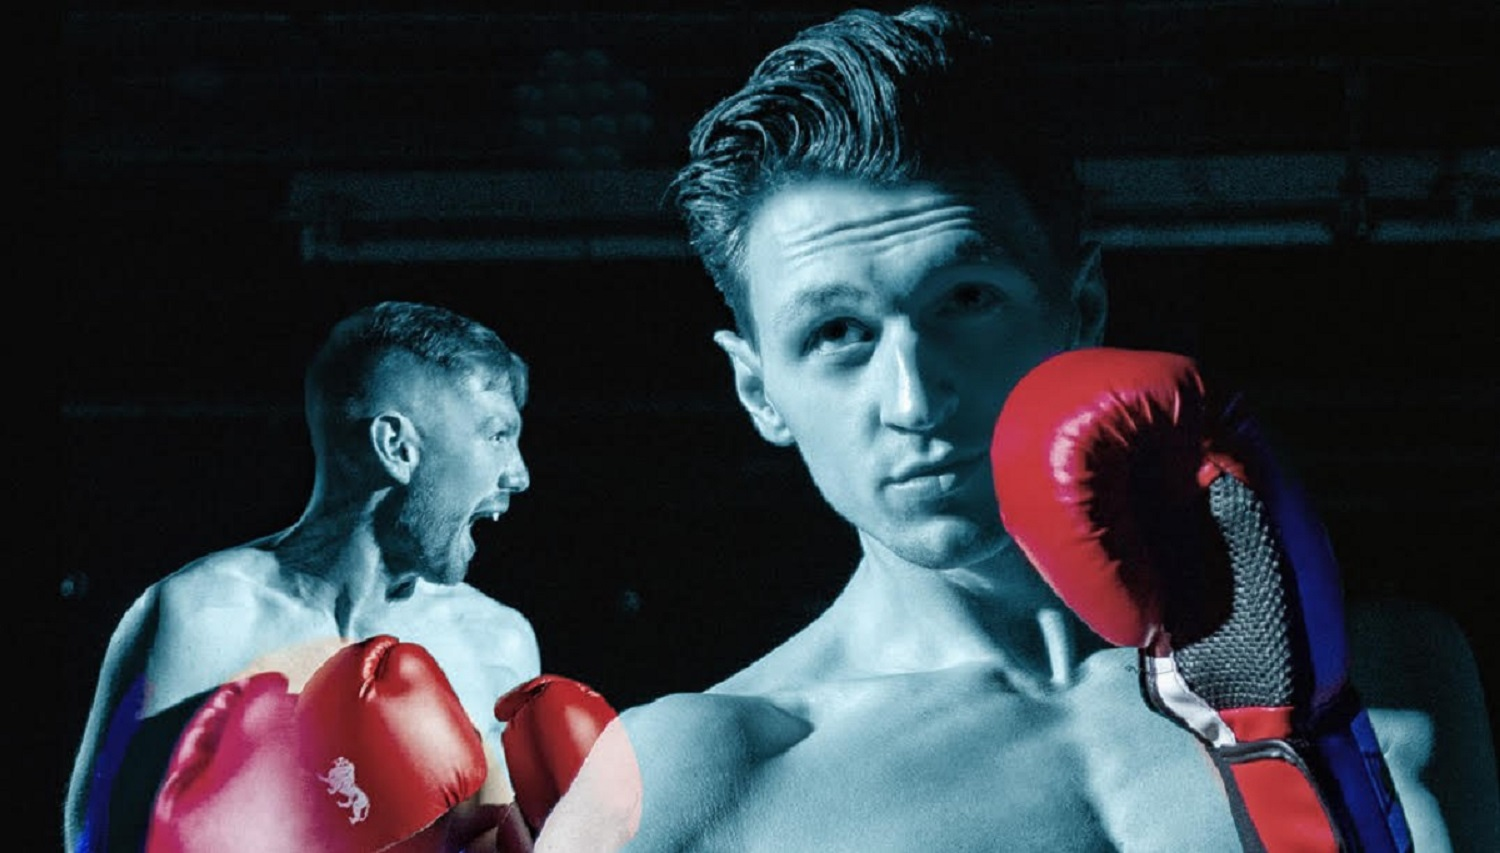 , Boxing love story Gypsy Queen returns to Manchester this autumn, Skem News - The Top Source for Skelmersdale News, Skem News - The Top Source for Skelmersdale News